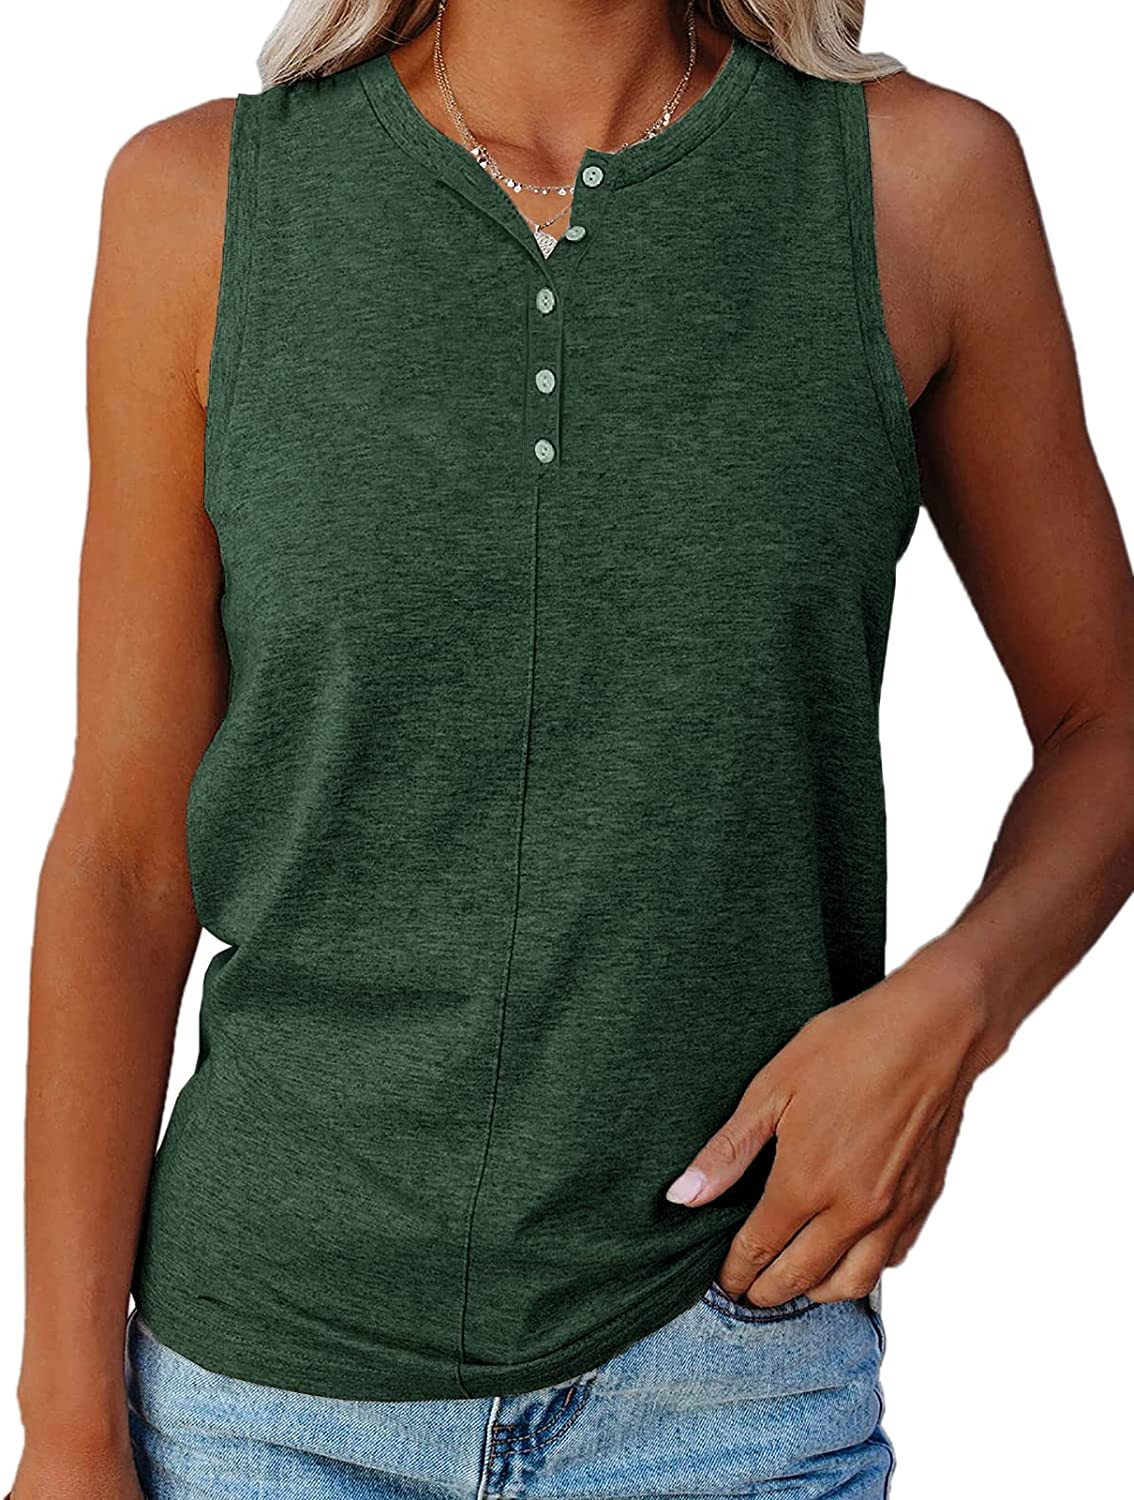 Ivay Womens Casual Cotton Tank Tops Summer Outfit Workout Sleeveless Button Down Tunic T Shirt